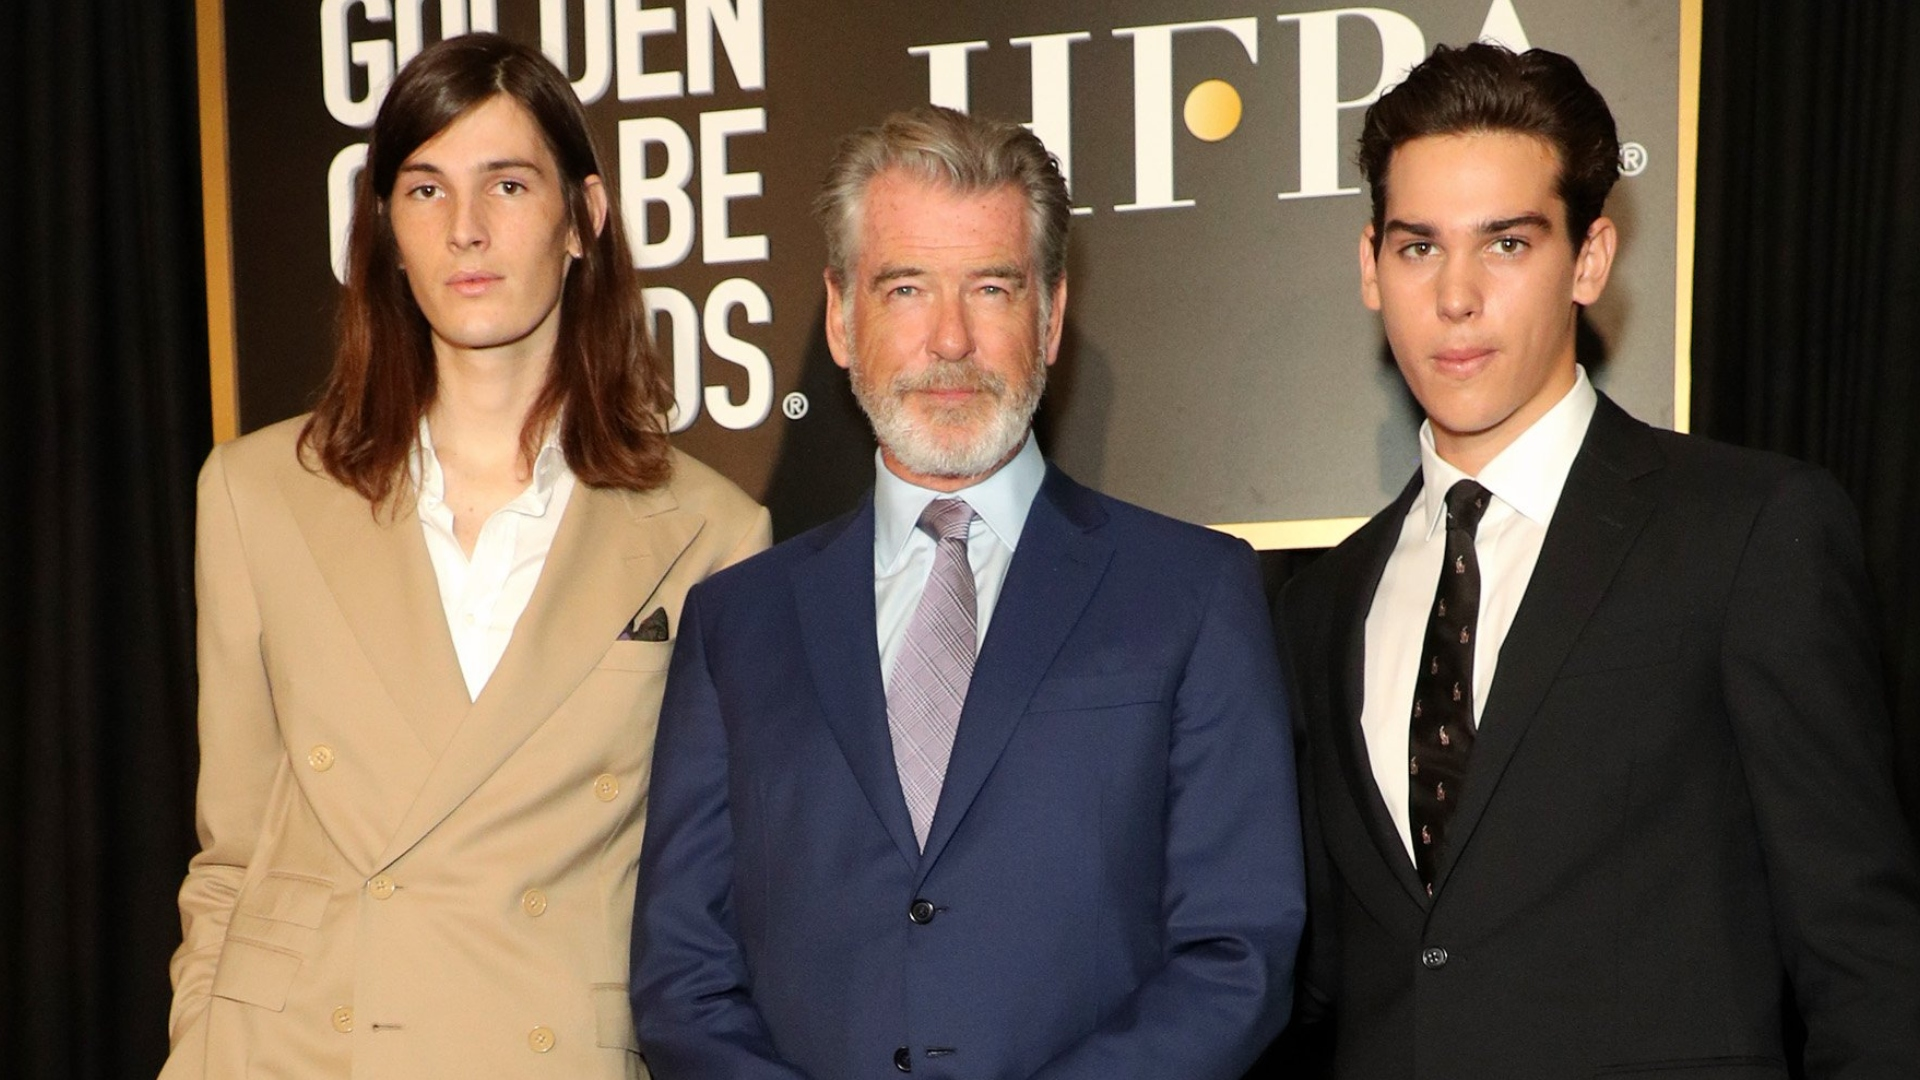 Dylan and Paris Brosnan Are the First Brothers to Be Named Golden Globe Ambassadors - SheKnows